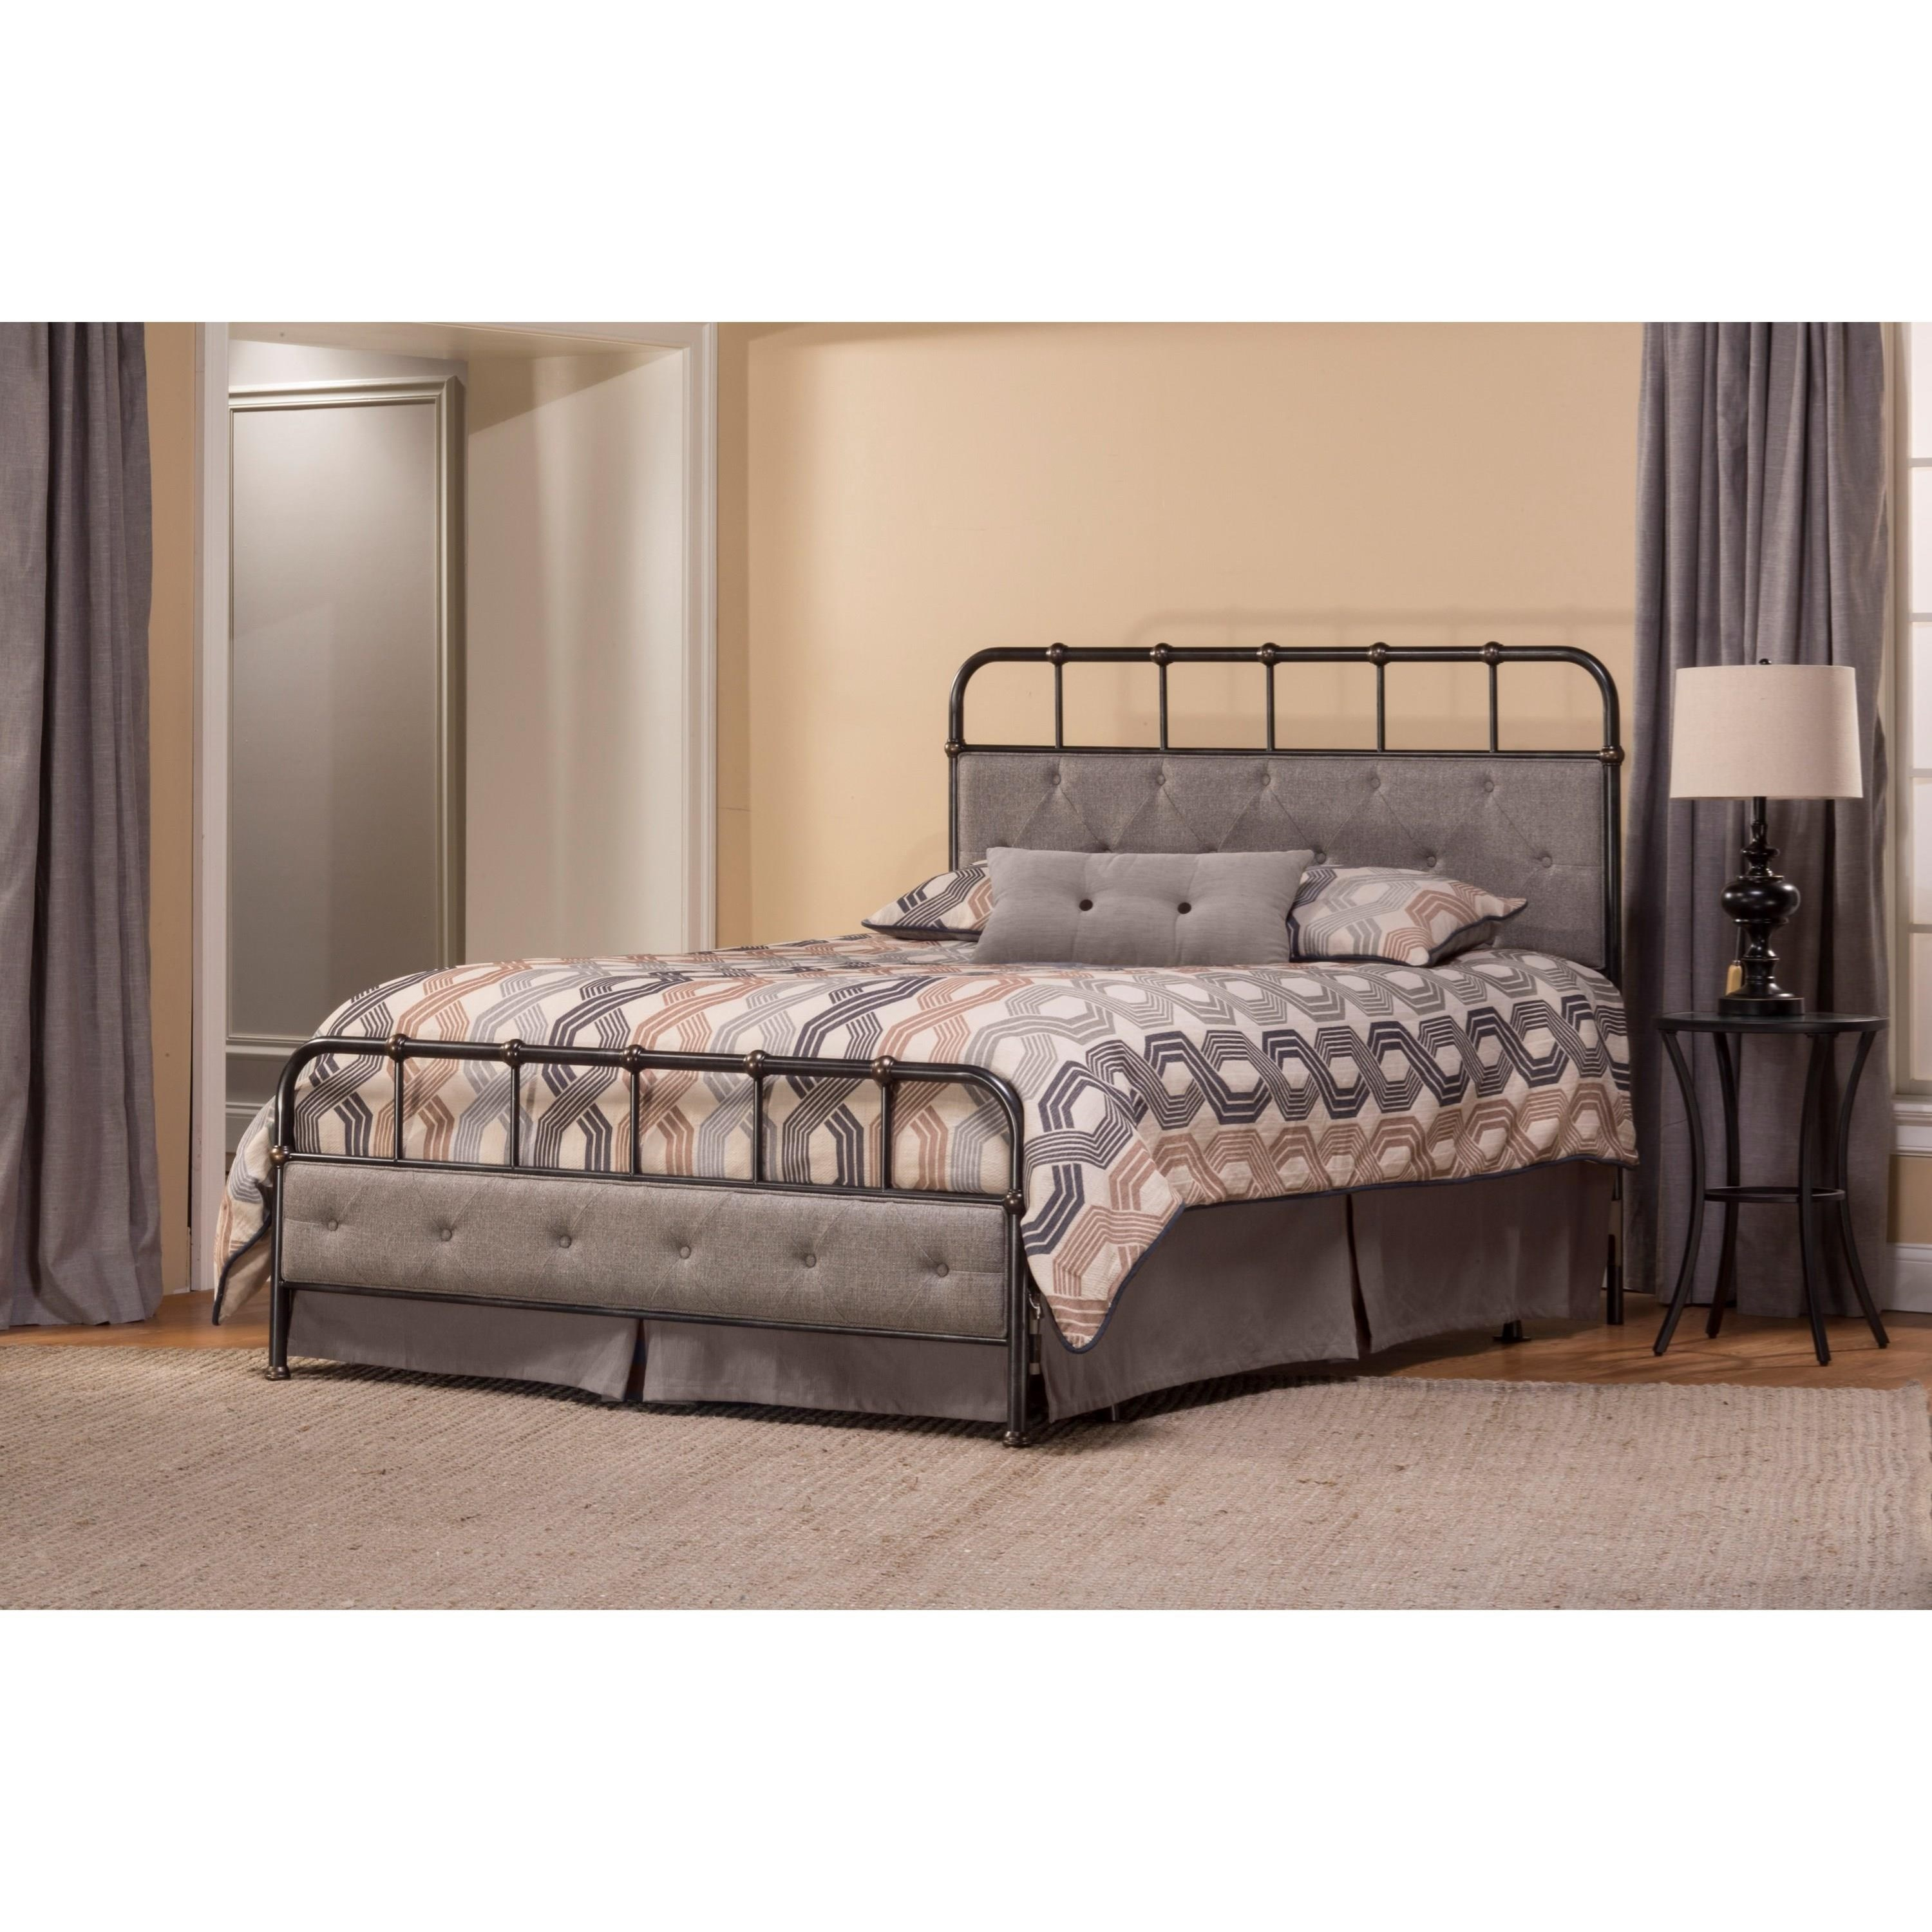 Hillsdale Metal Beds King Bed Set - Item Number: 1861BKR